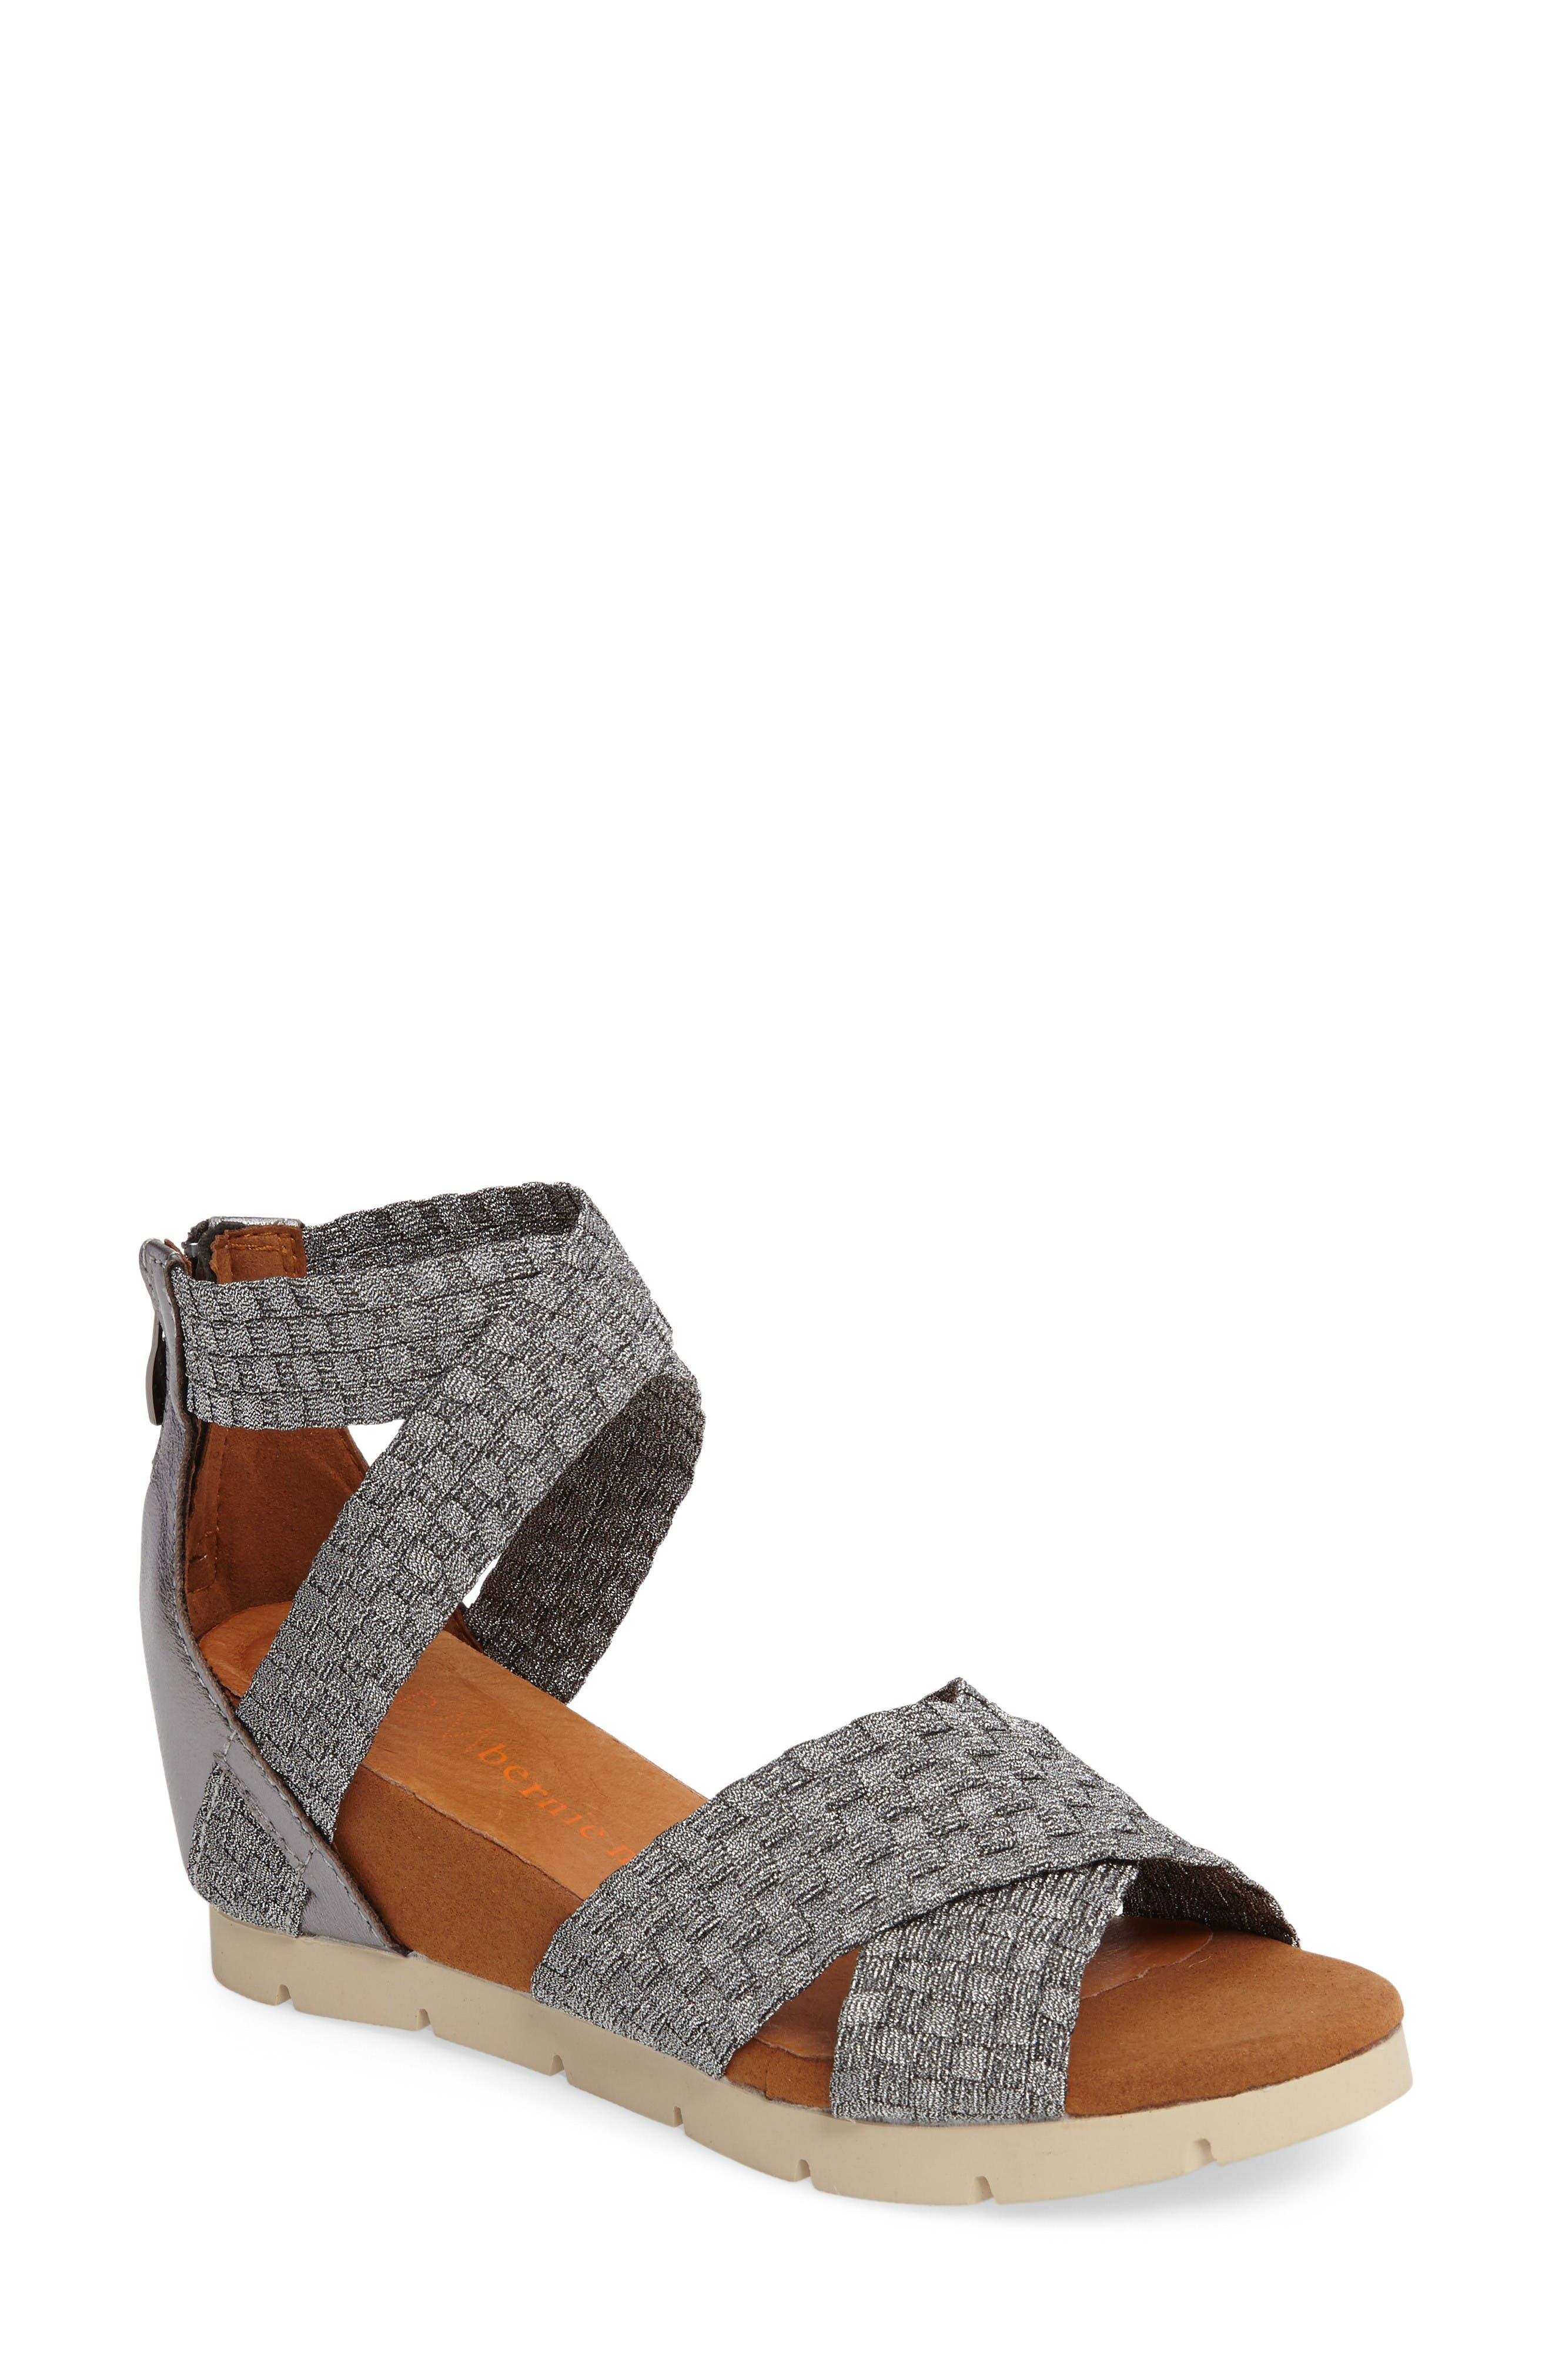 Honesty Sandal,                         Main,                         color, Pewter Fabric